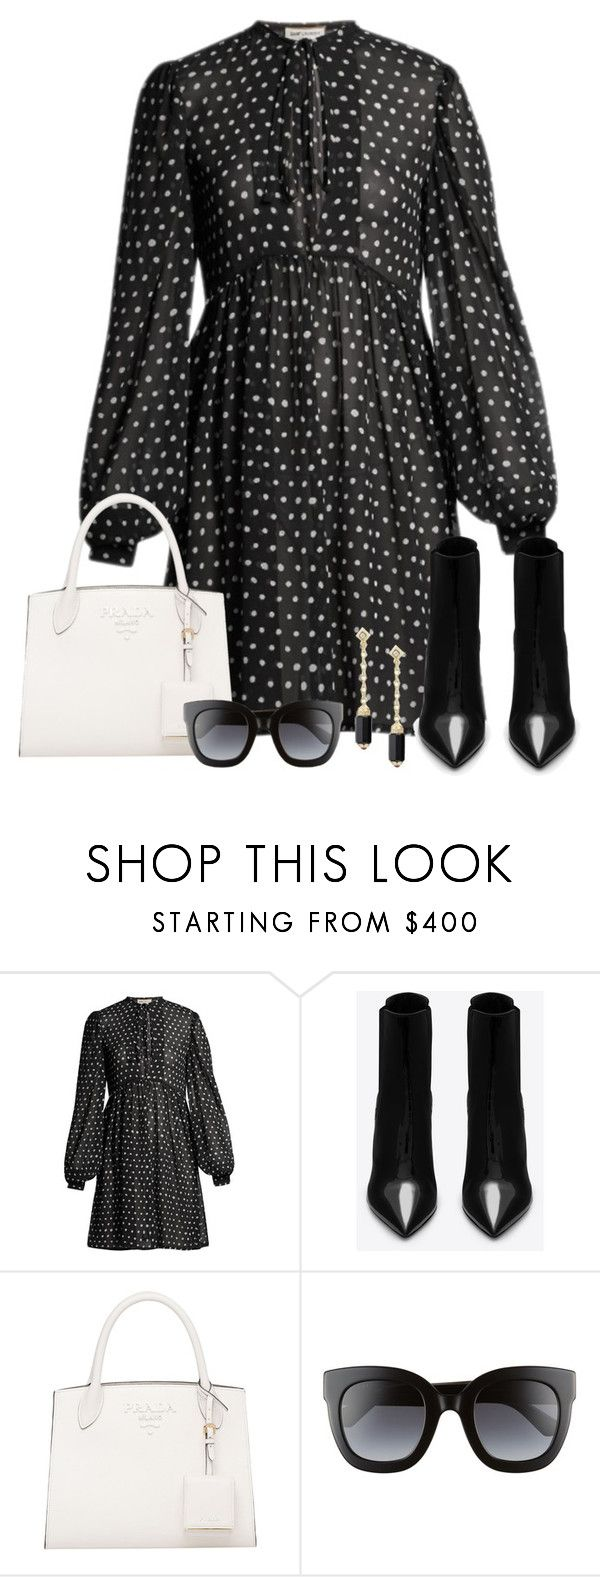 """Untitled #3799"" by elia72 ❤ liked on Polyvore featuring Yves Saint Laurent, Gucci and David Yurman"